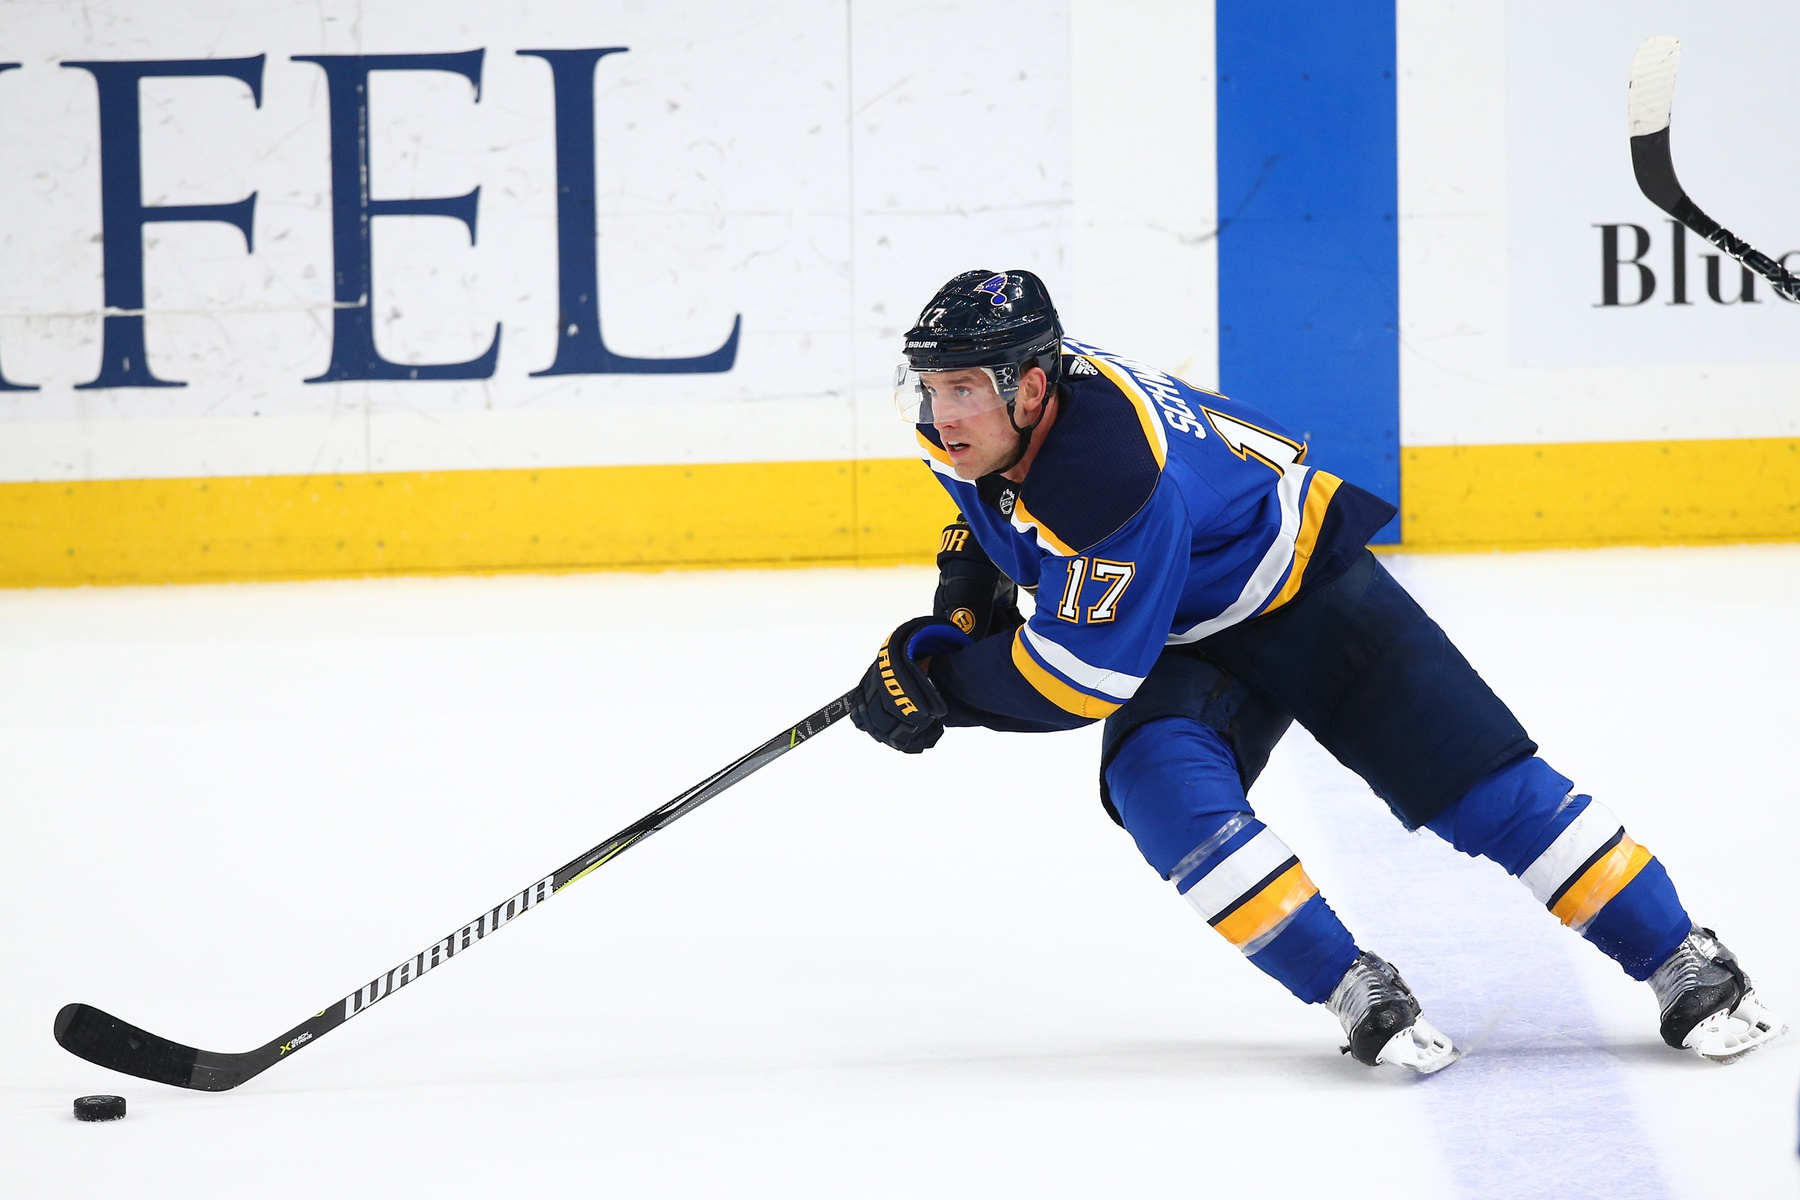 The Blues have some of the best locked-in young talent